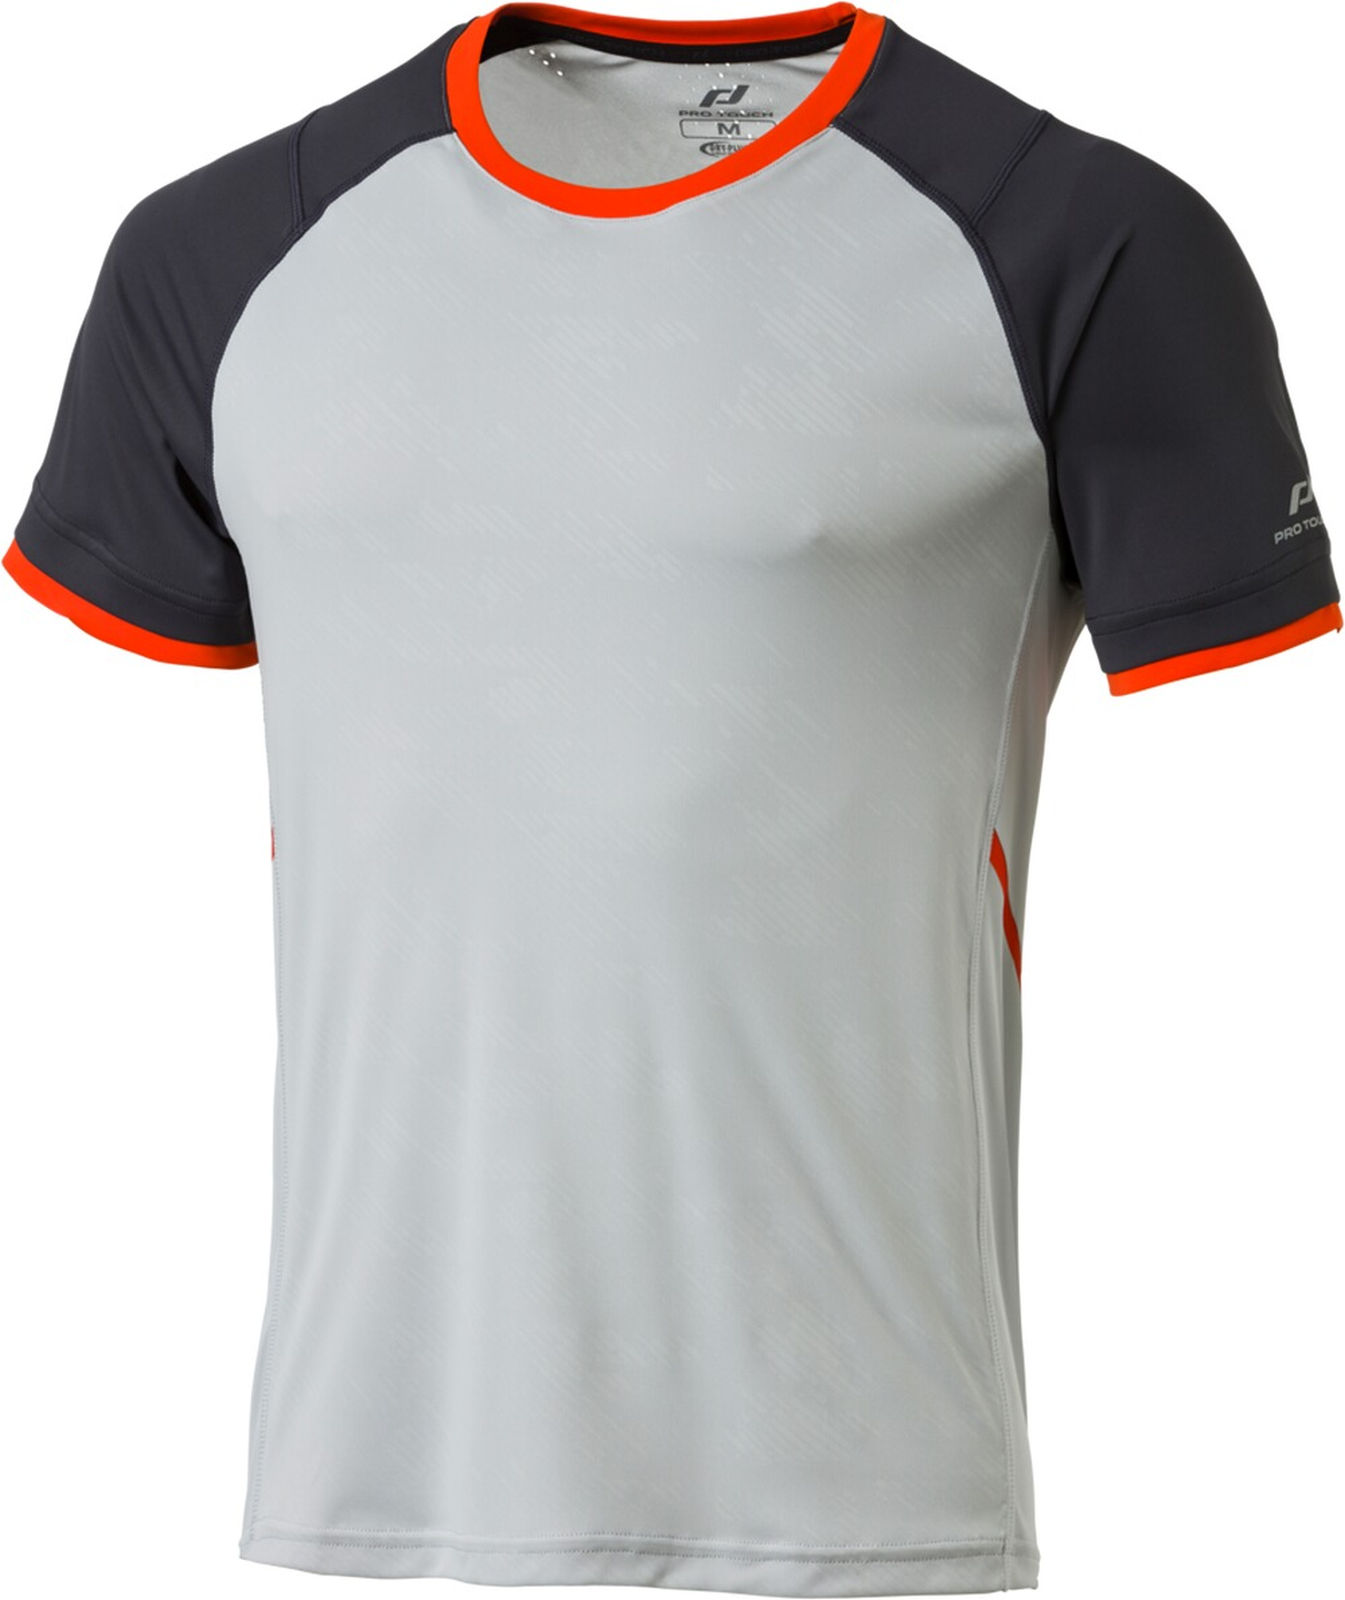 Details about Pro Touch Men's Running Shirt Sports Tee Functional T Shirt Akin Grey Orange